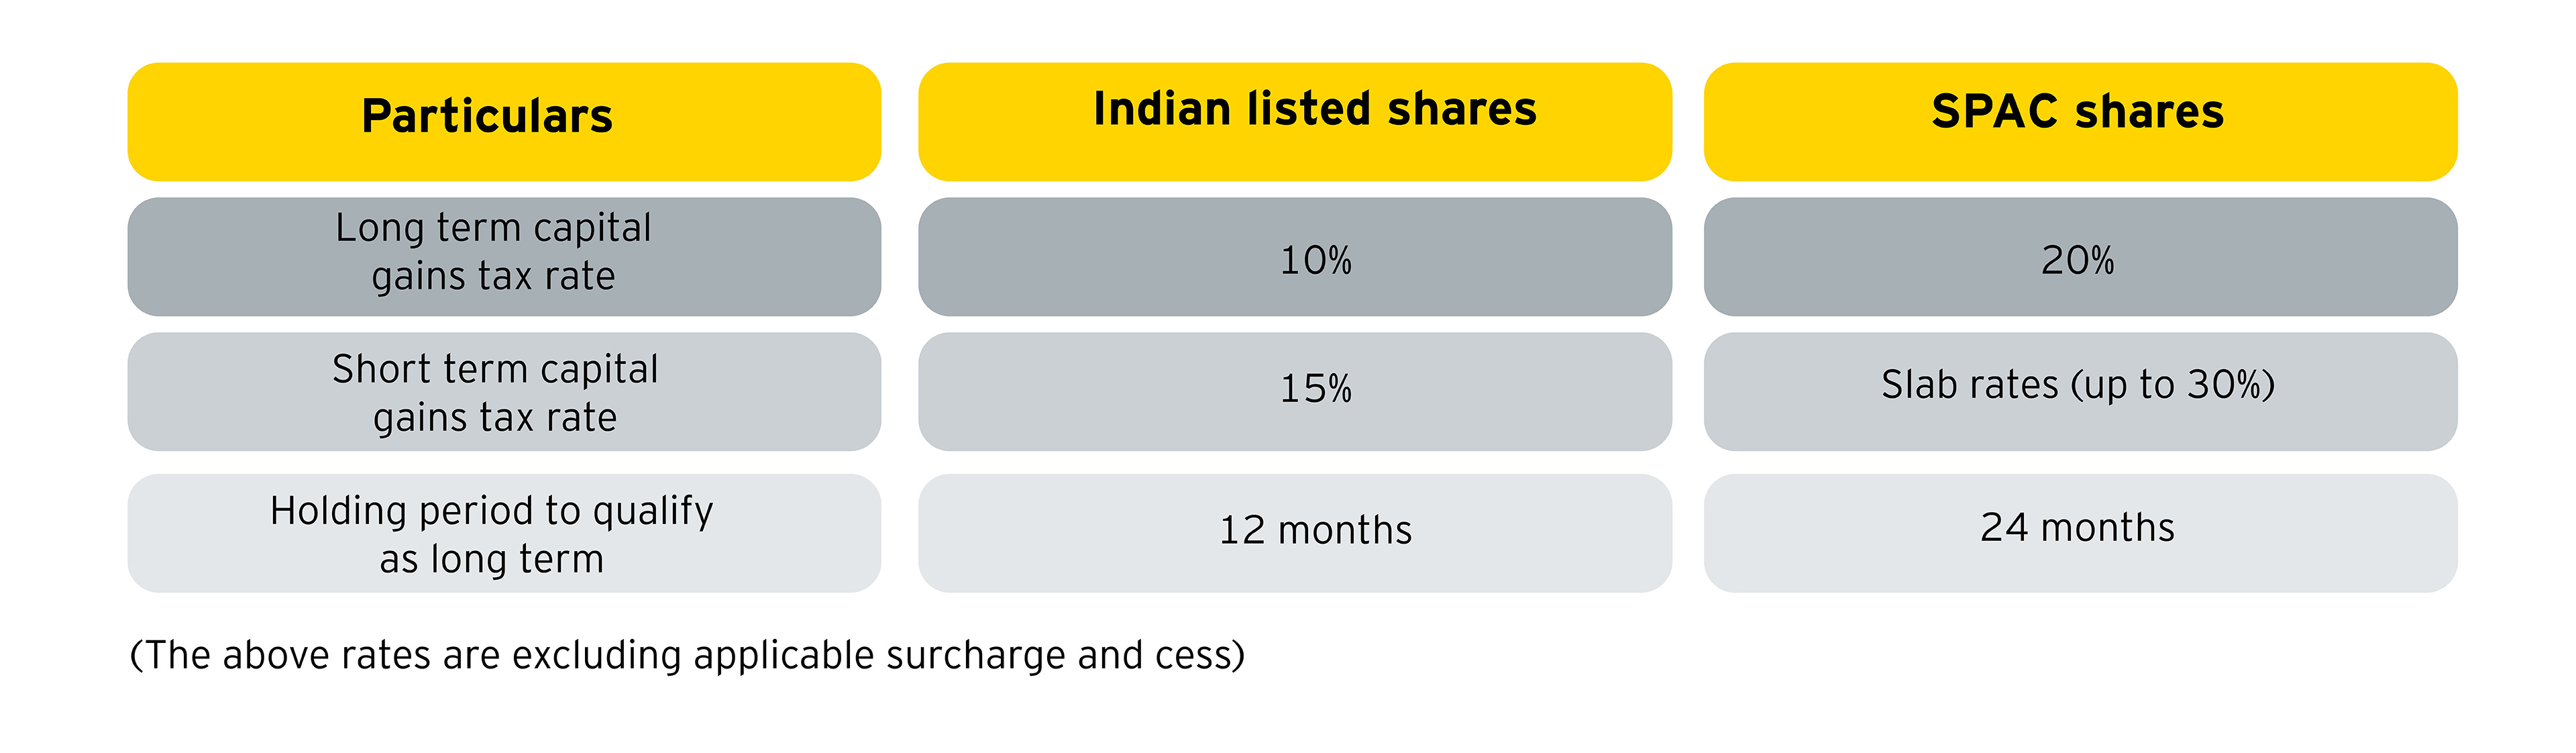 Tax implications for Indian investors on future sale of the SPAC shares